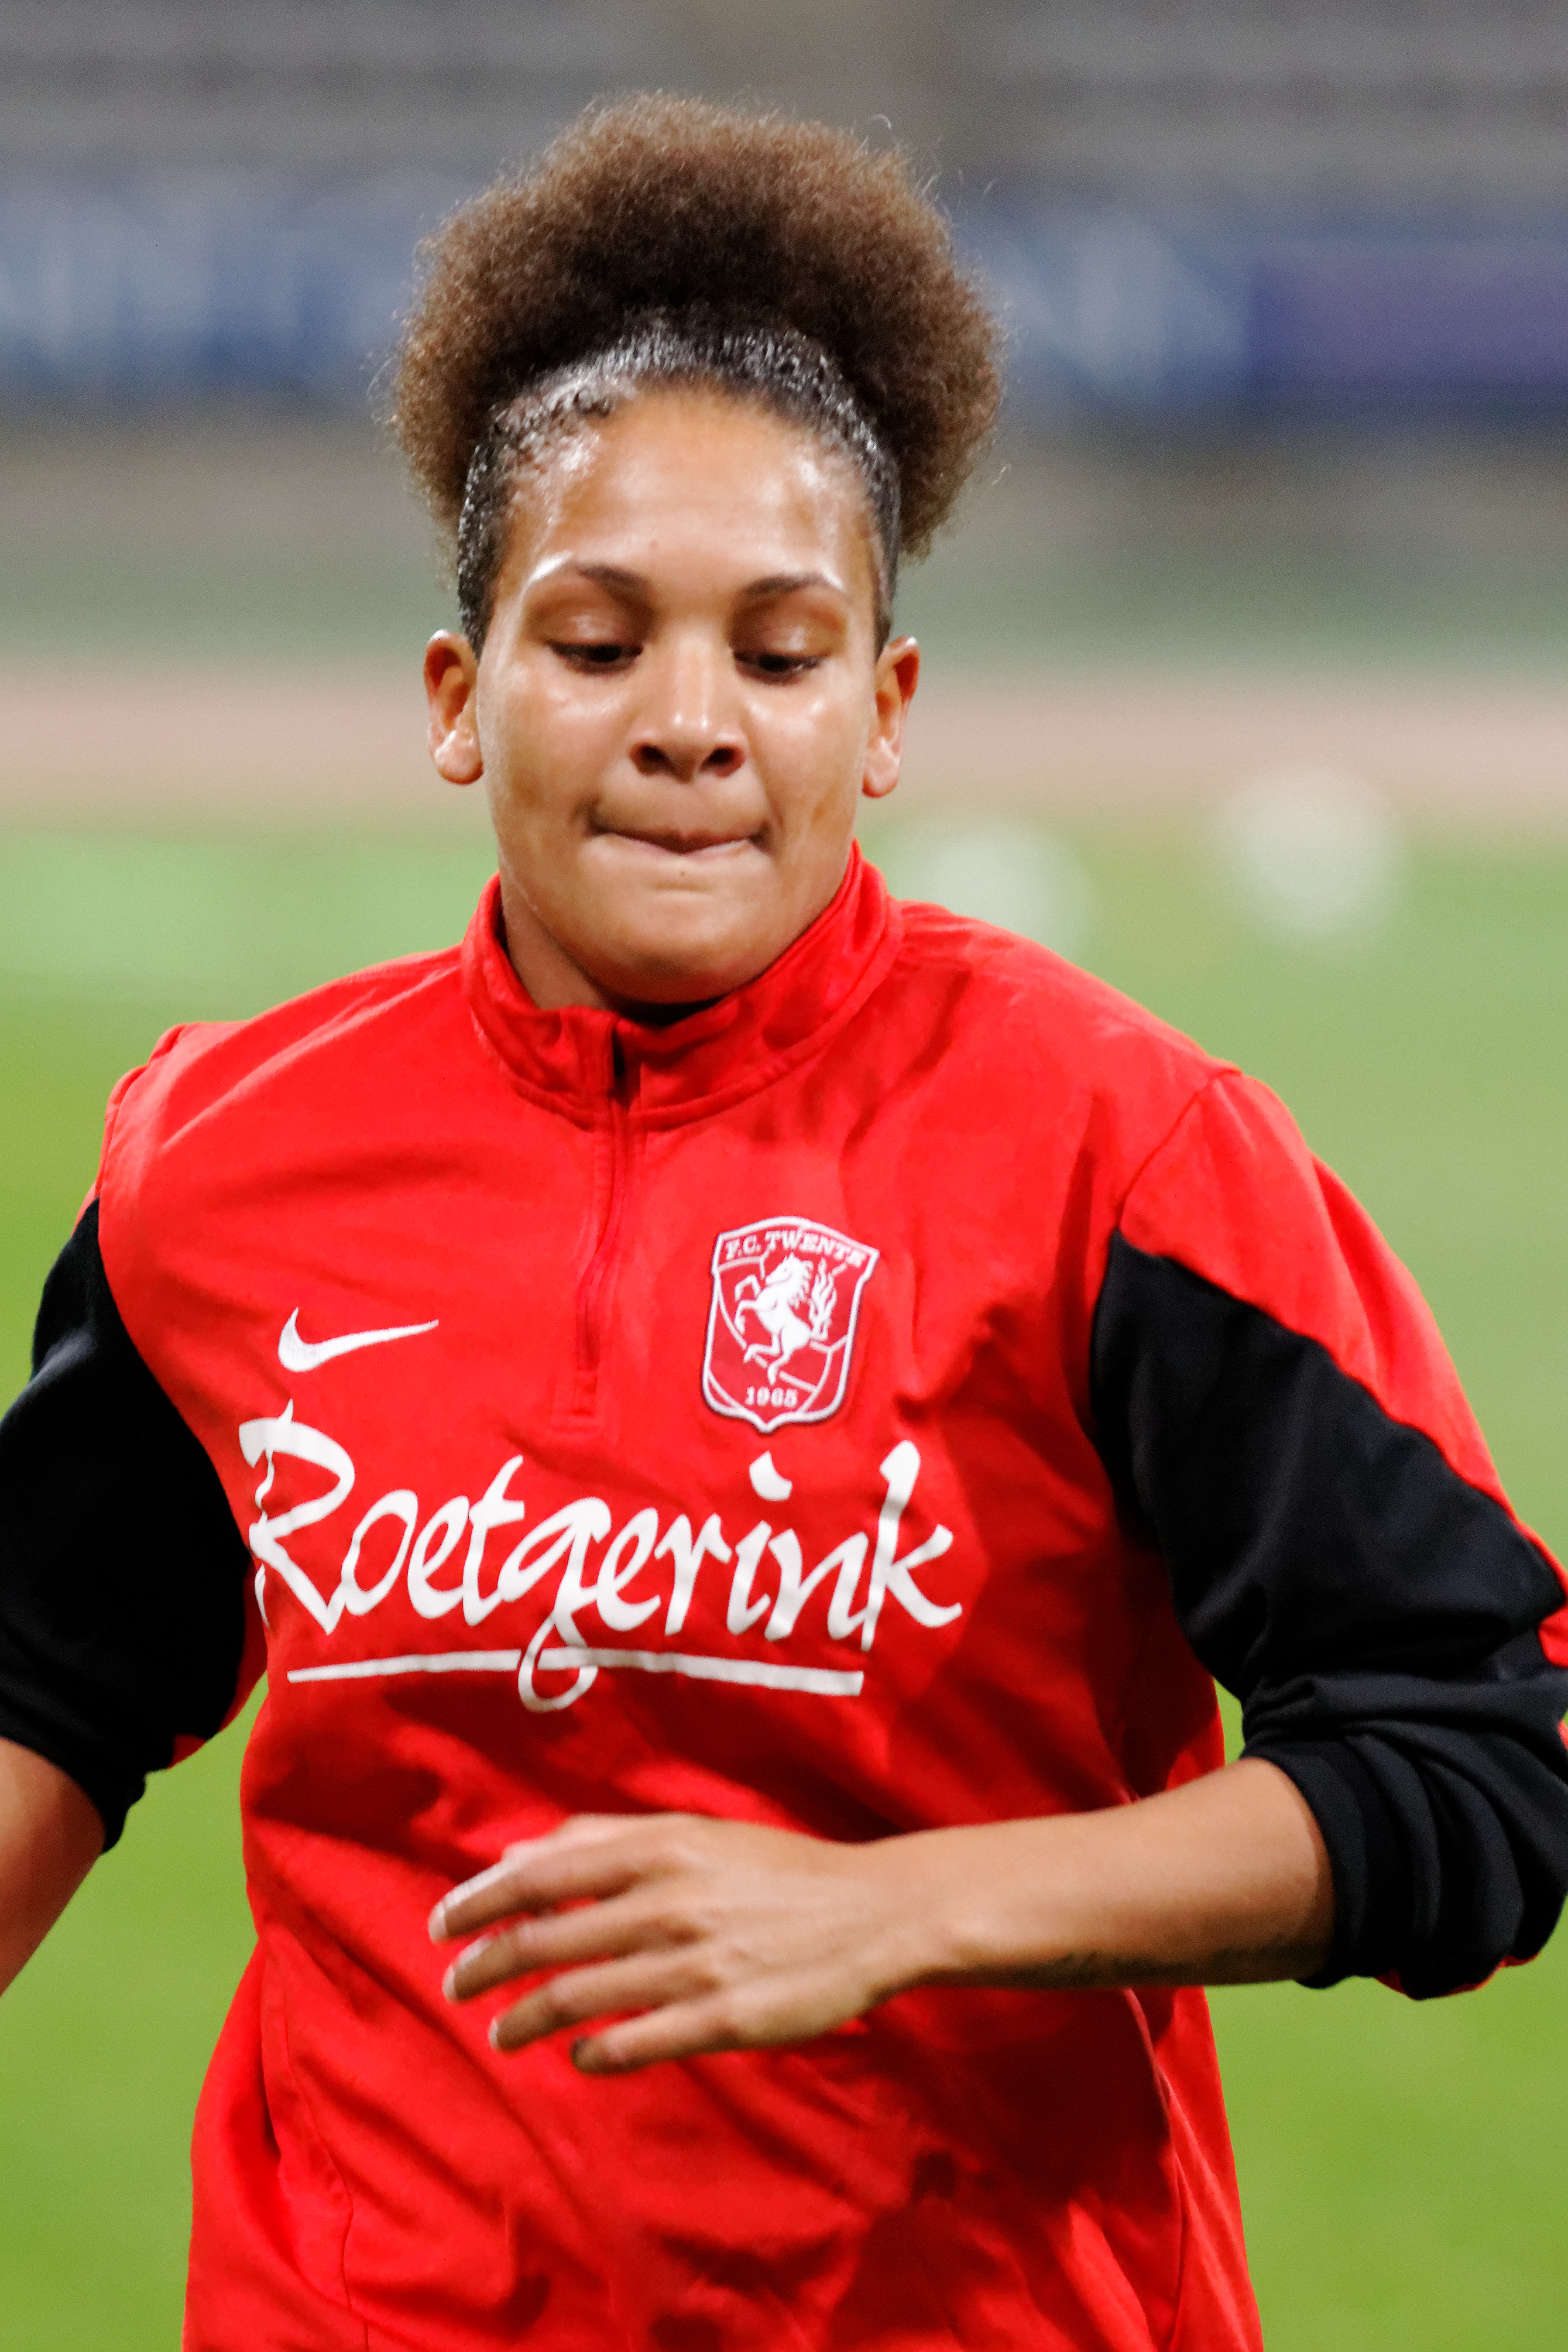 The 26-year old daughter of father (?) and mother(?) Shanice van de Sanden in 2019 photo. Shanice van de Sanden earned a 0.1 million dollar salary - leaving the net worth at  million in 2019